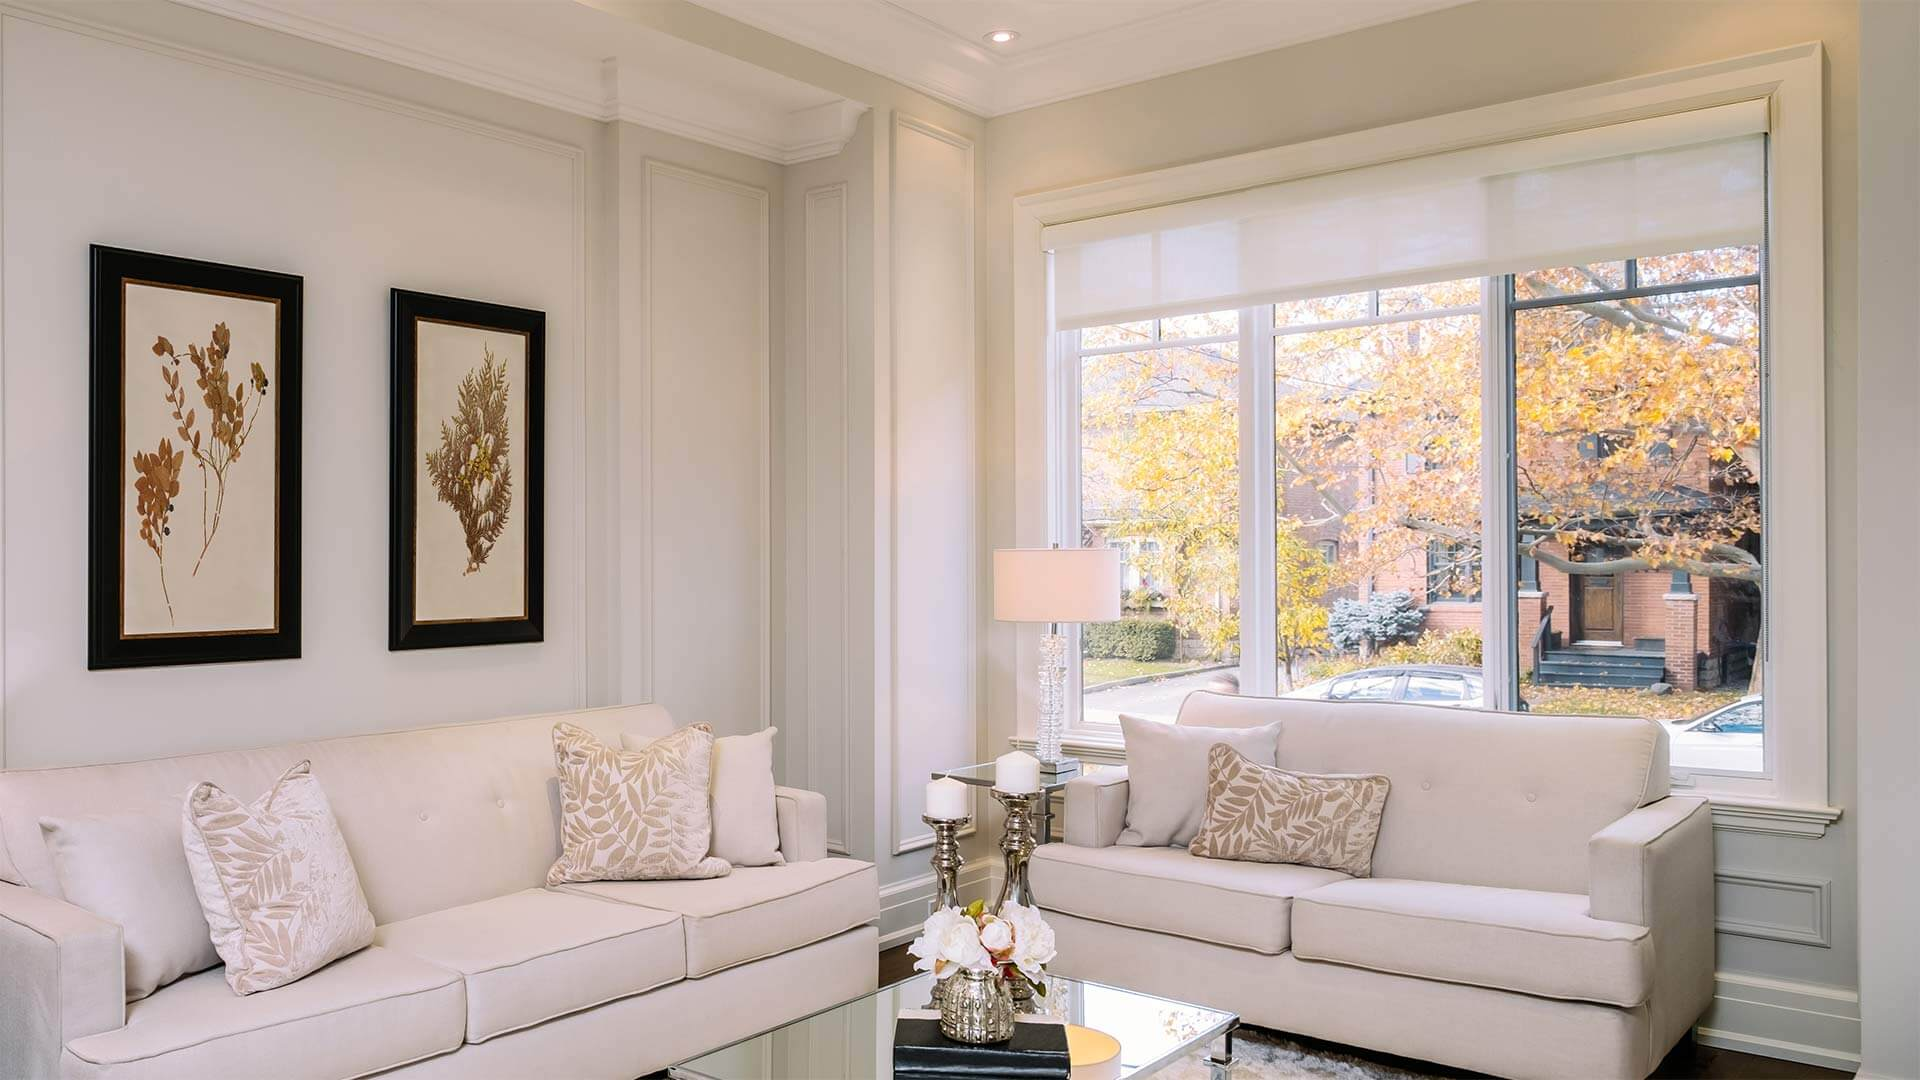 Stylish and bright living room a with large triple-lite casement window.